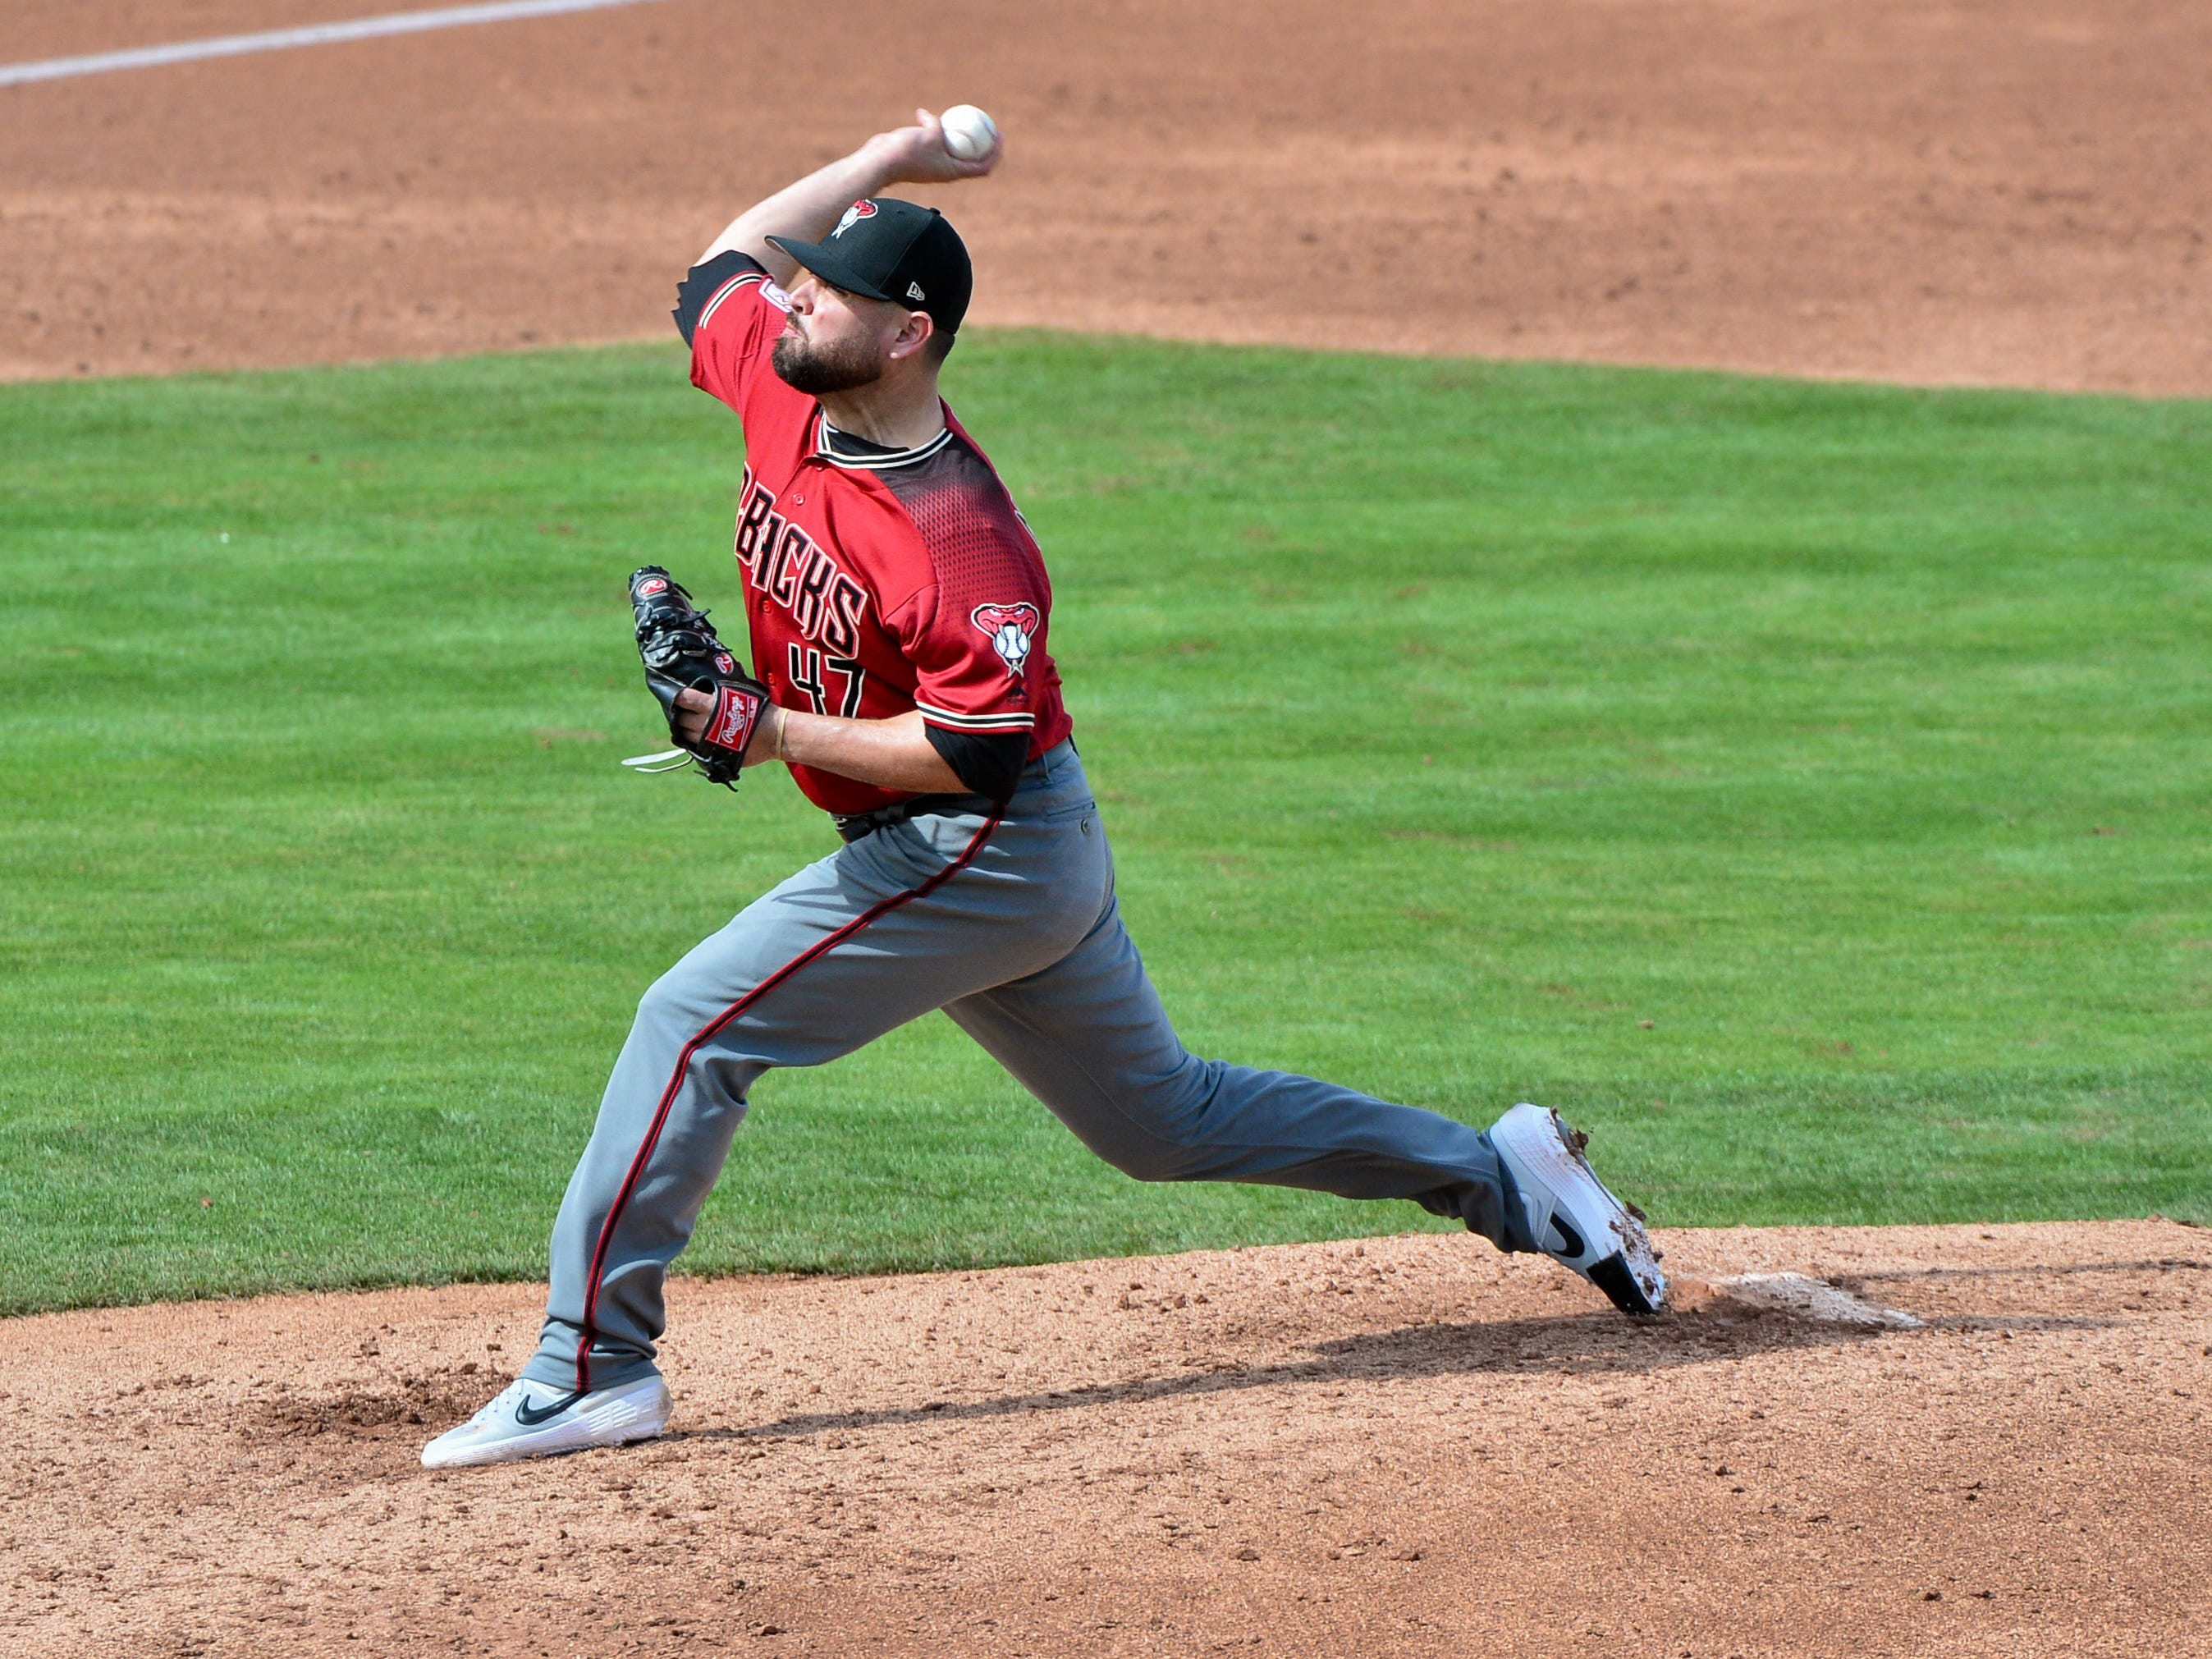 Feb 26, 2019: Arizona Diamondbacks starting pitcher Ryan Newell (47) throws during the second inning against the Chicago Cubs at Sloan Park.